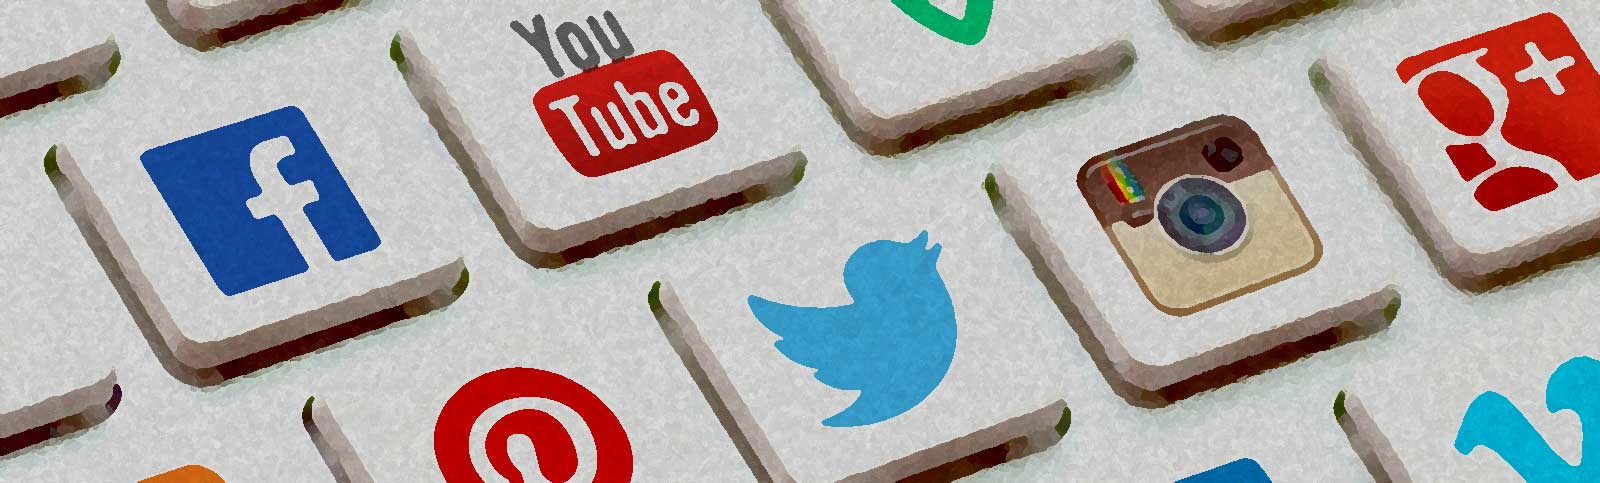 Social Media Plays a Crucial Role in the Future of Business